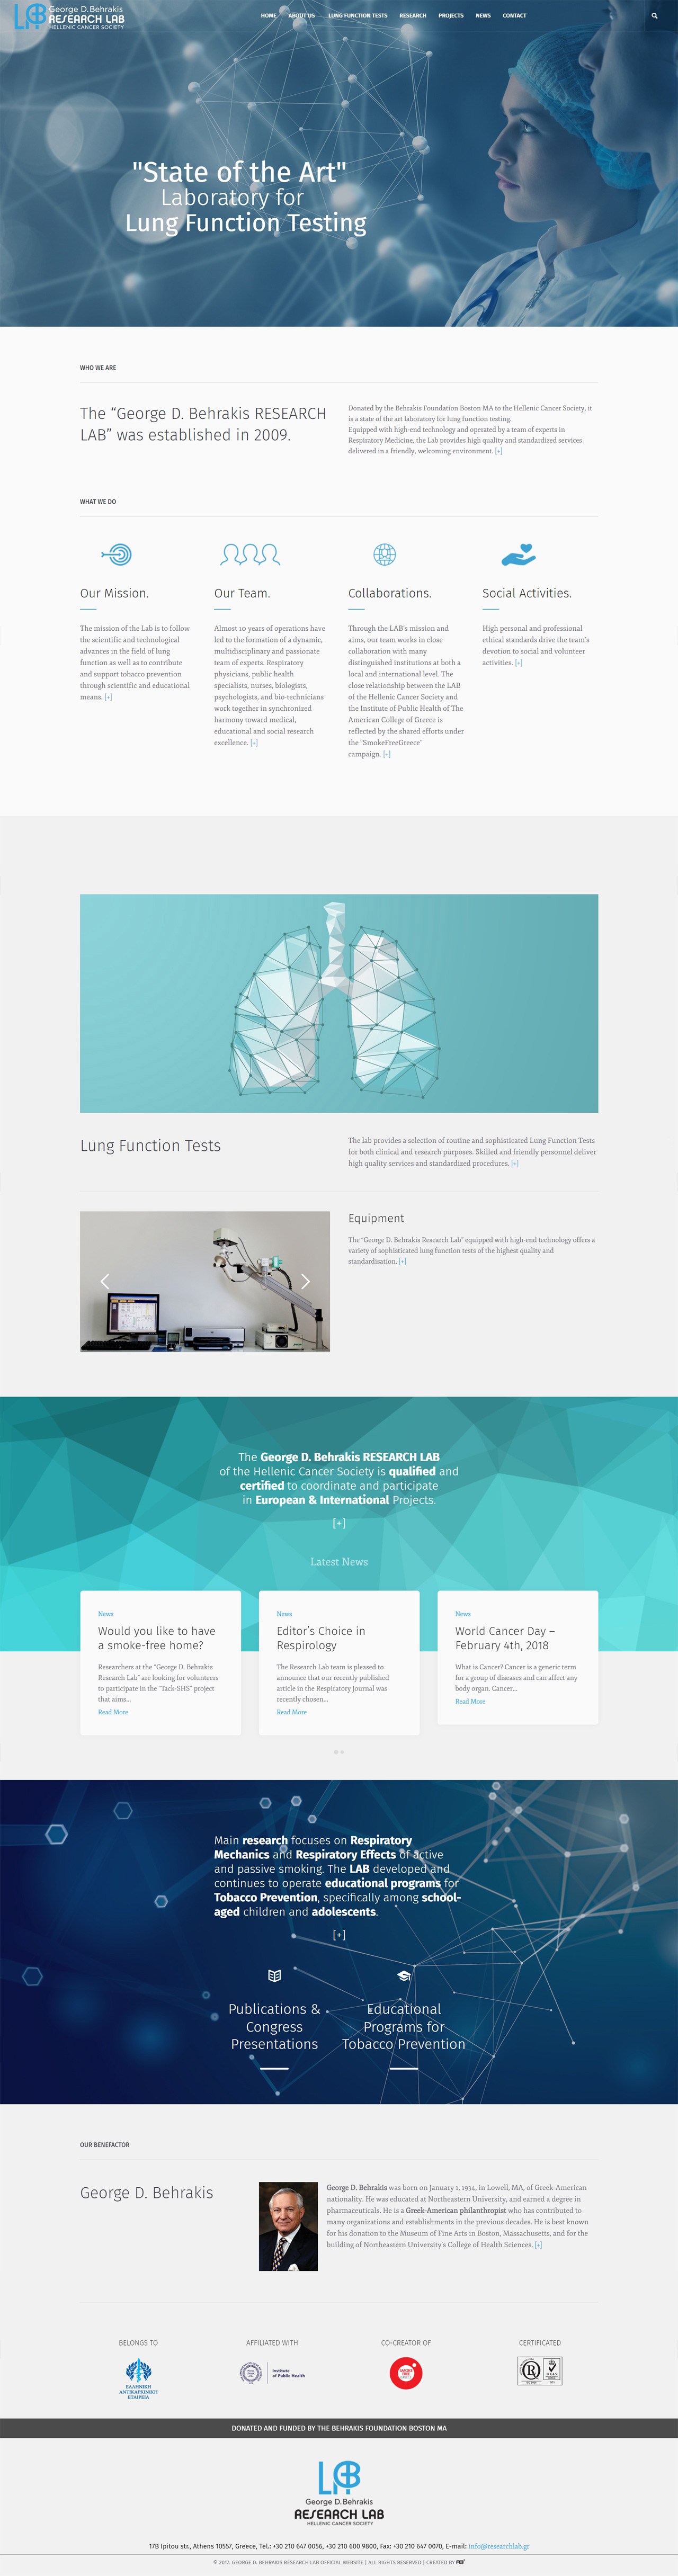 A3-DIGITAL-RESEARCHLAB-WEBSITE